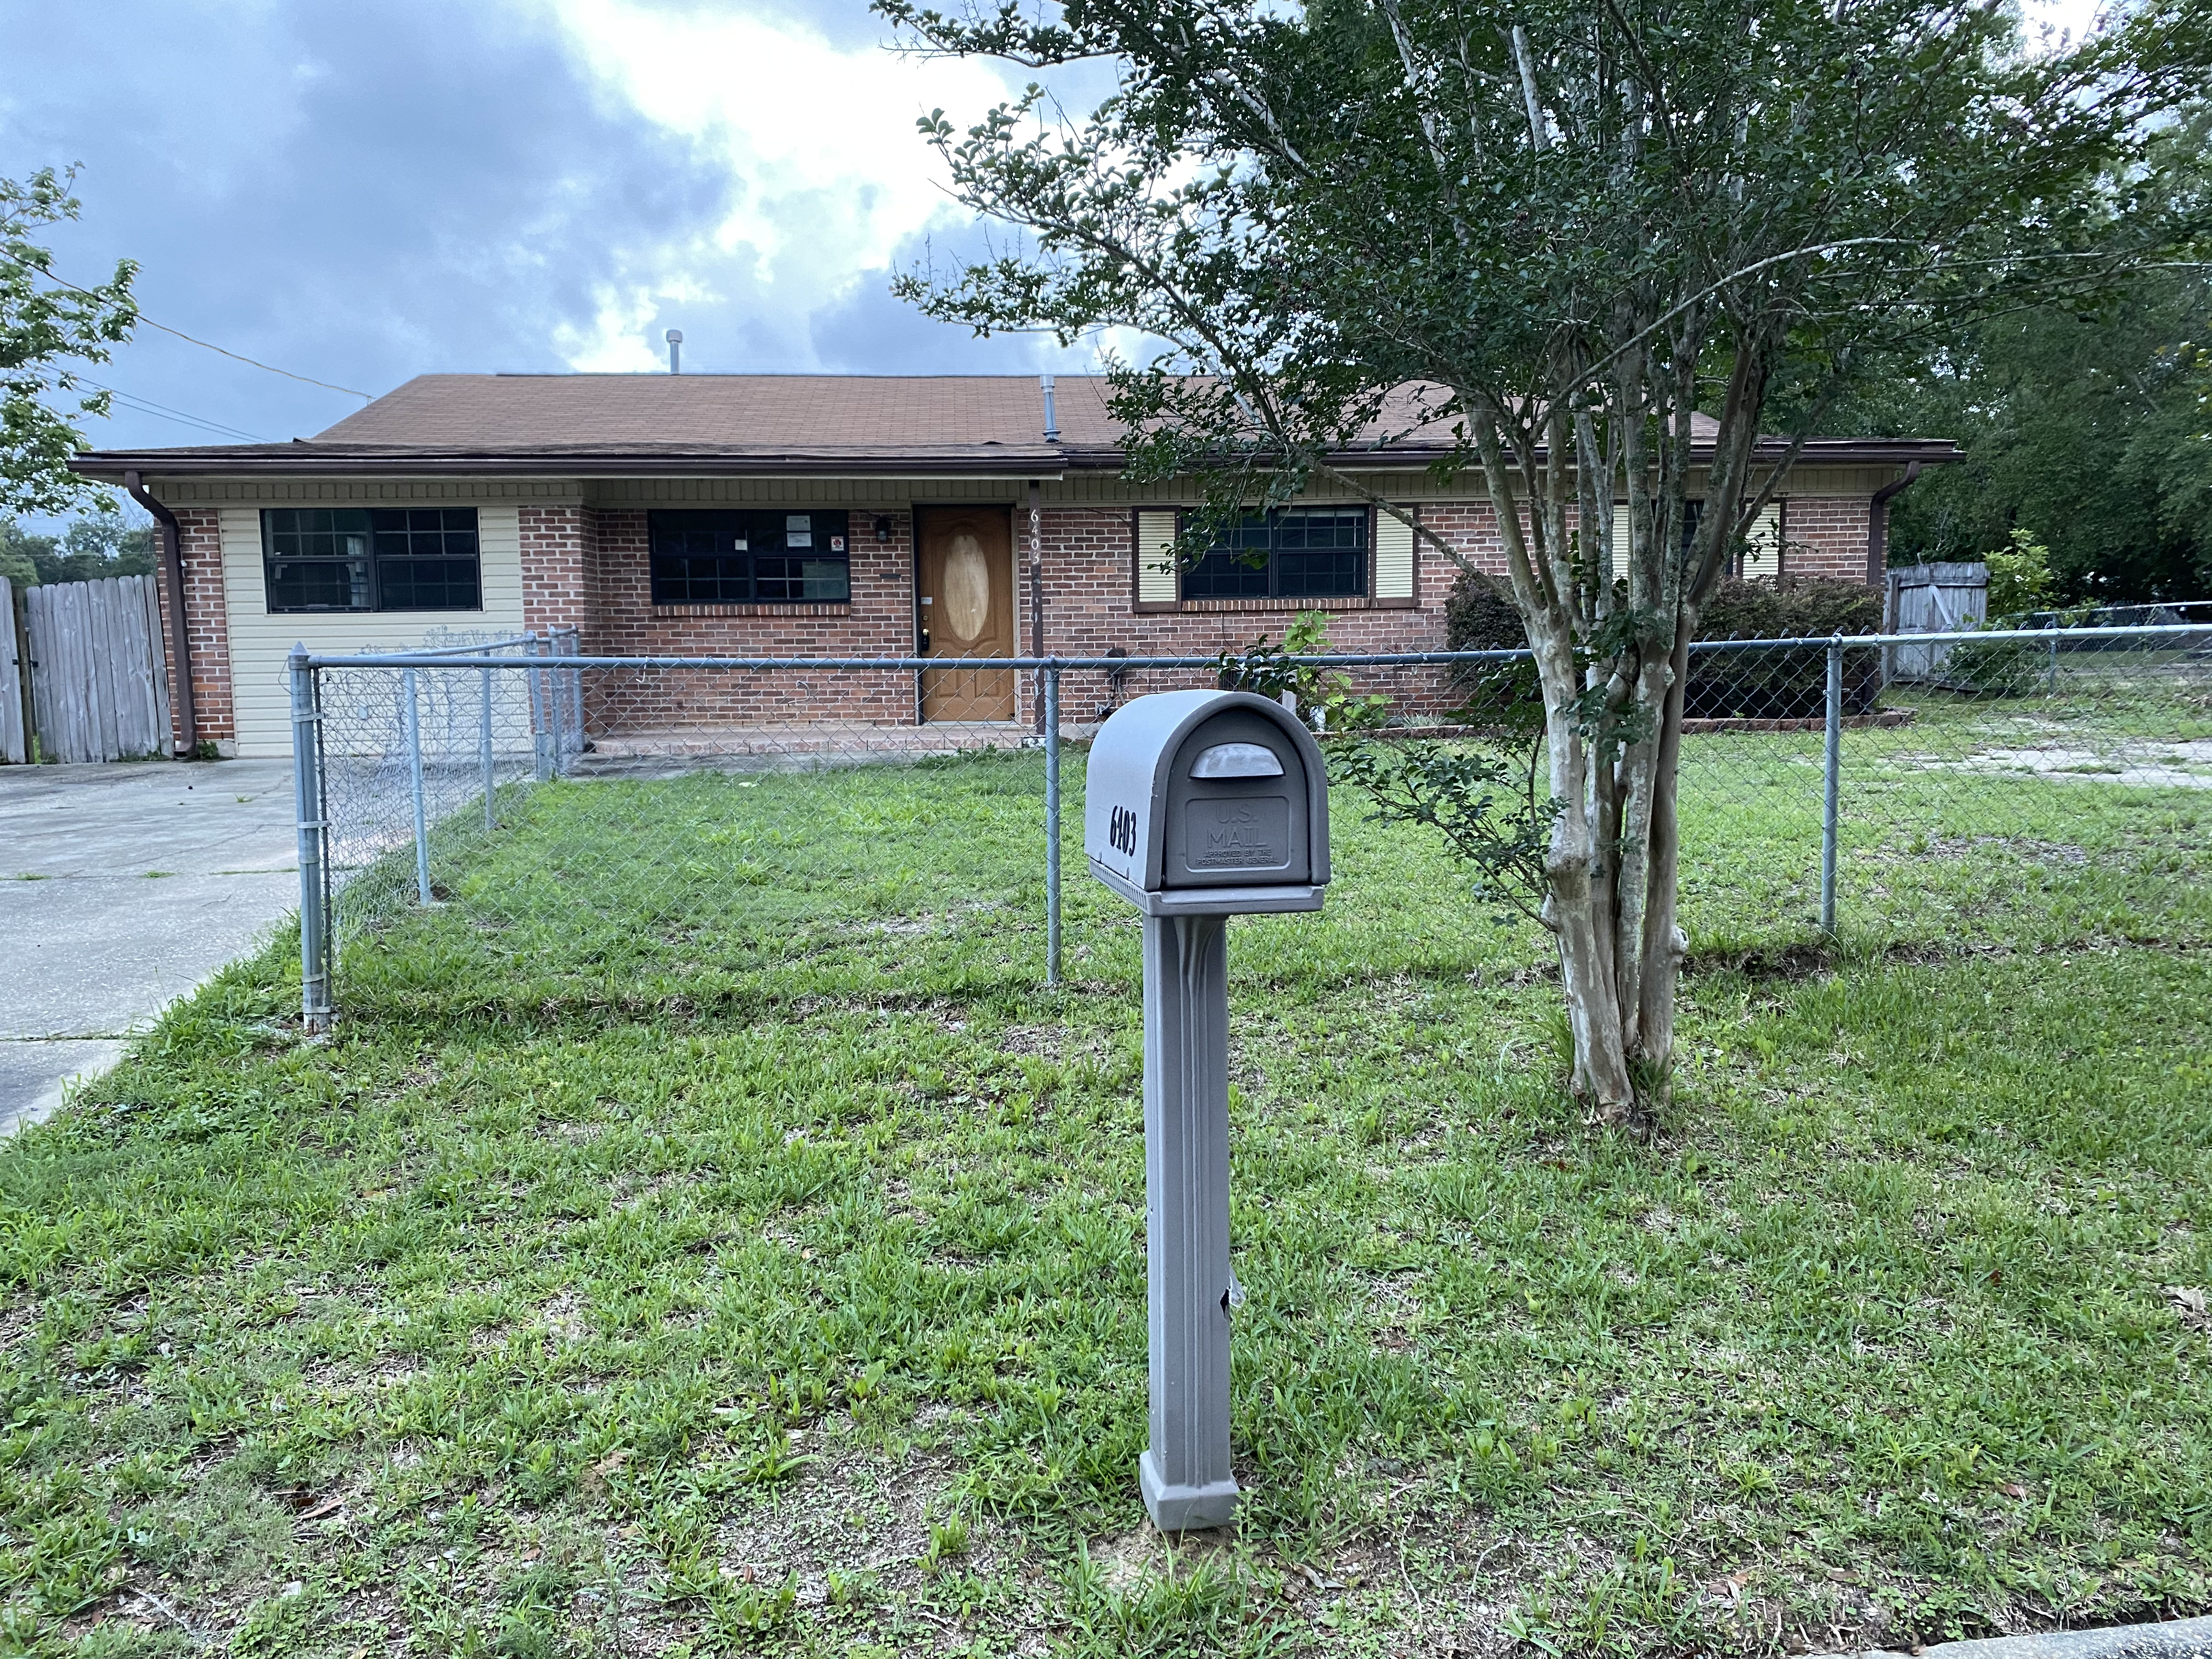 JUST LISTED! 2745sf BRICK HOME ON 1/4 ACRE IN MILTON, FL!